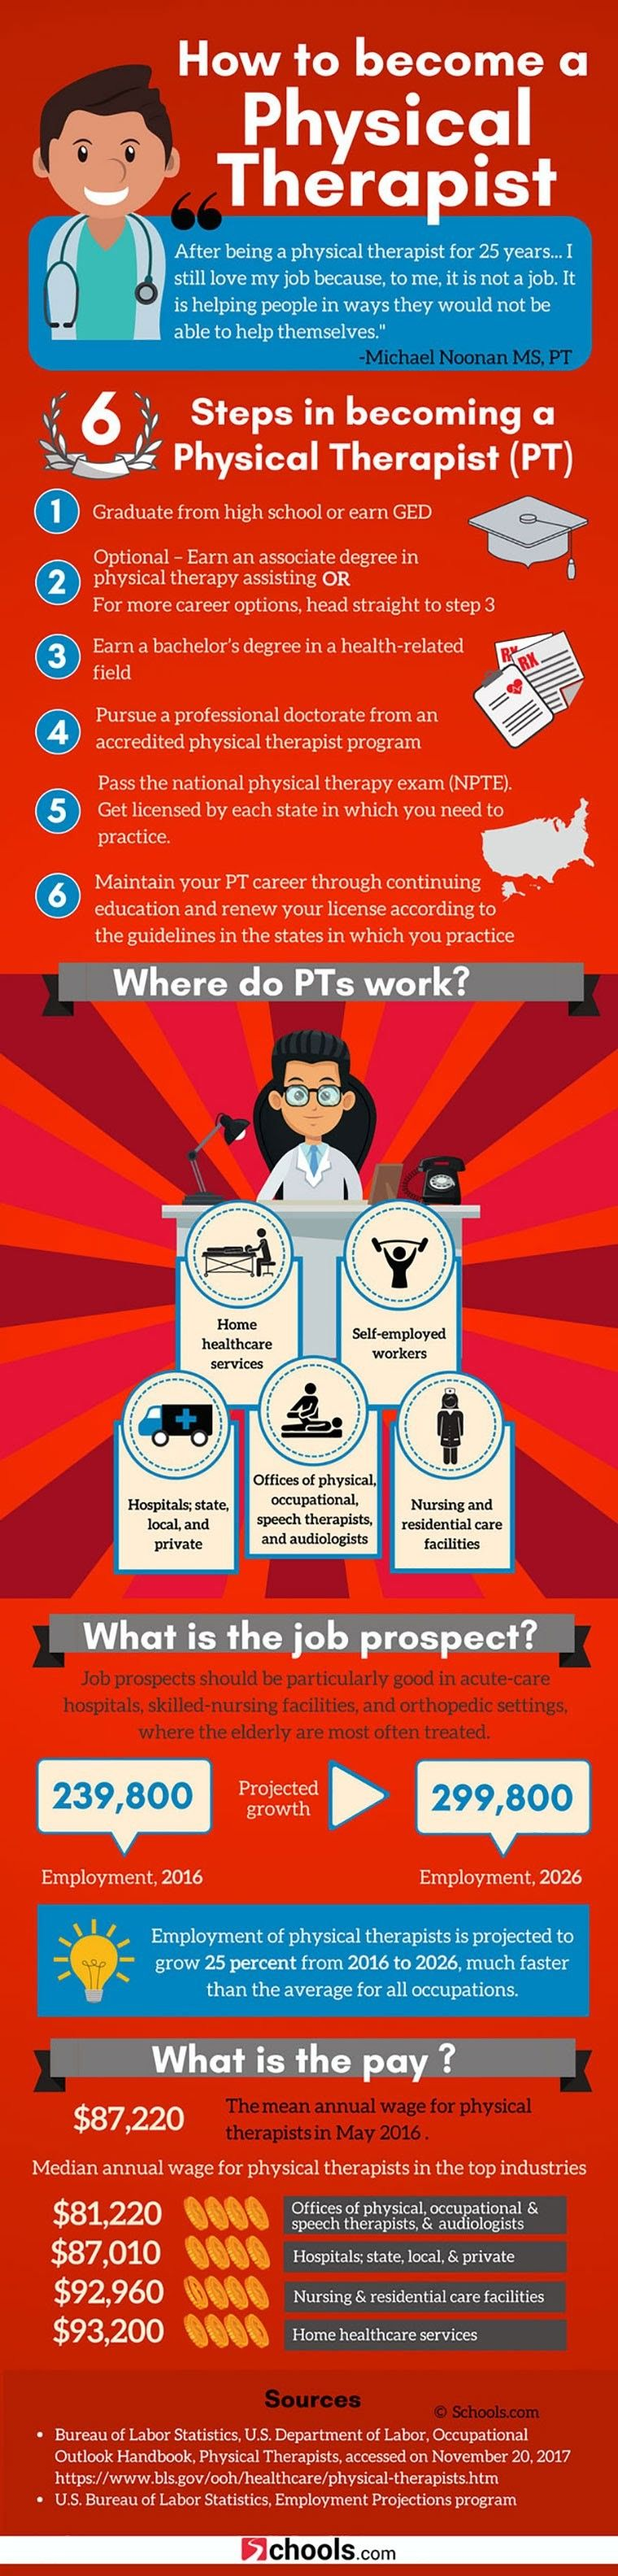 How To Become A Physical Therapist Infographic Physics Educational Infographic Career Advancement